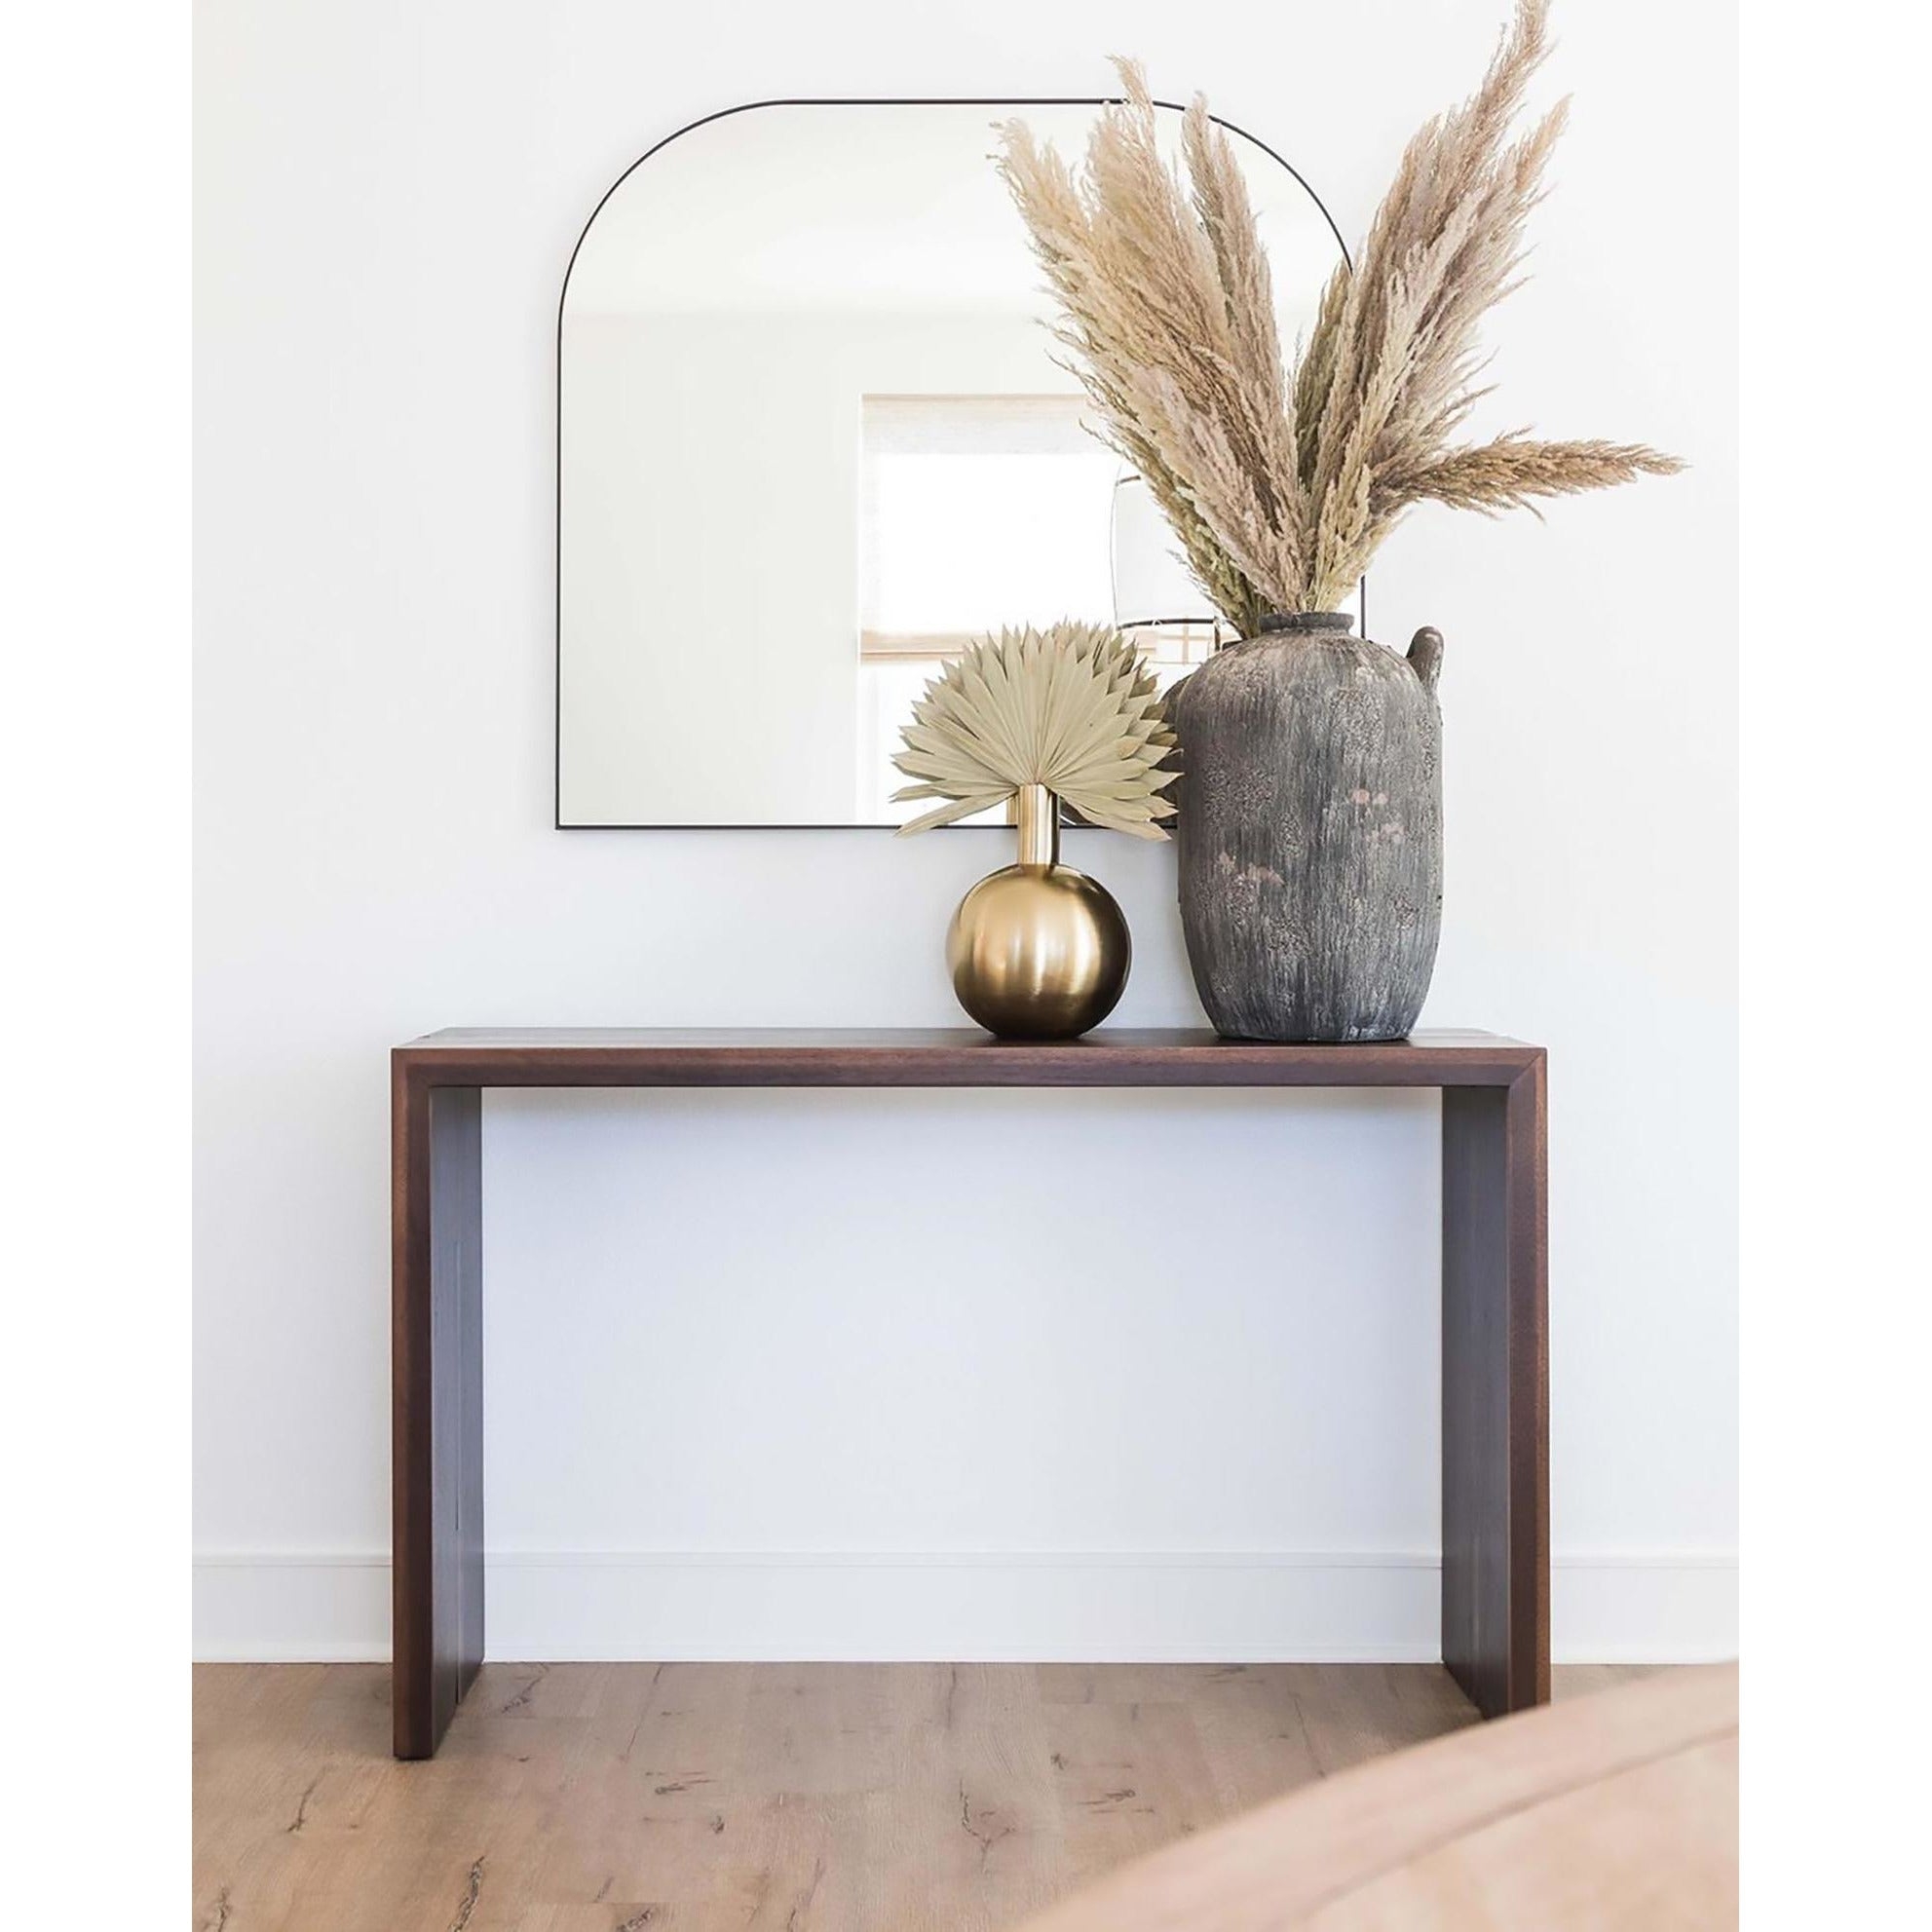 Custom Console Table for Kate - abdobuilt